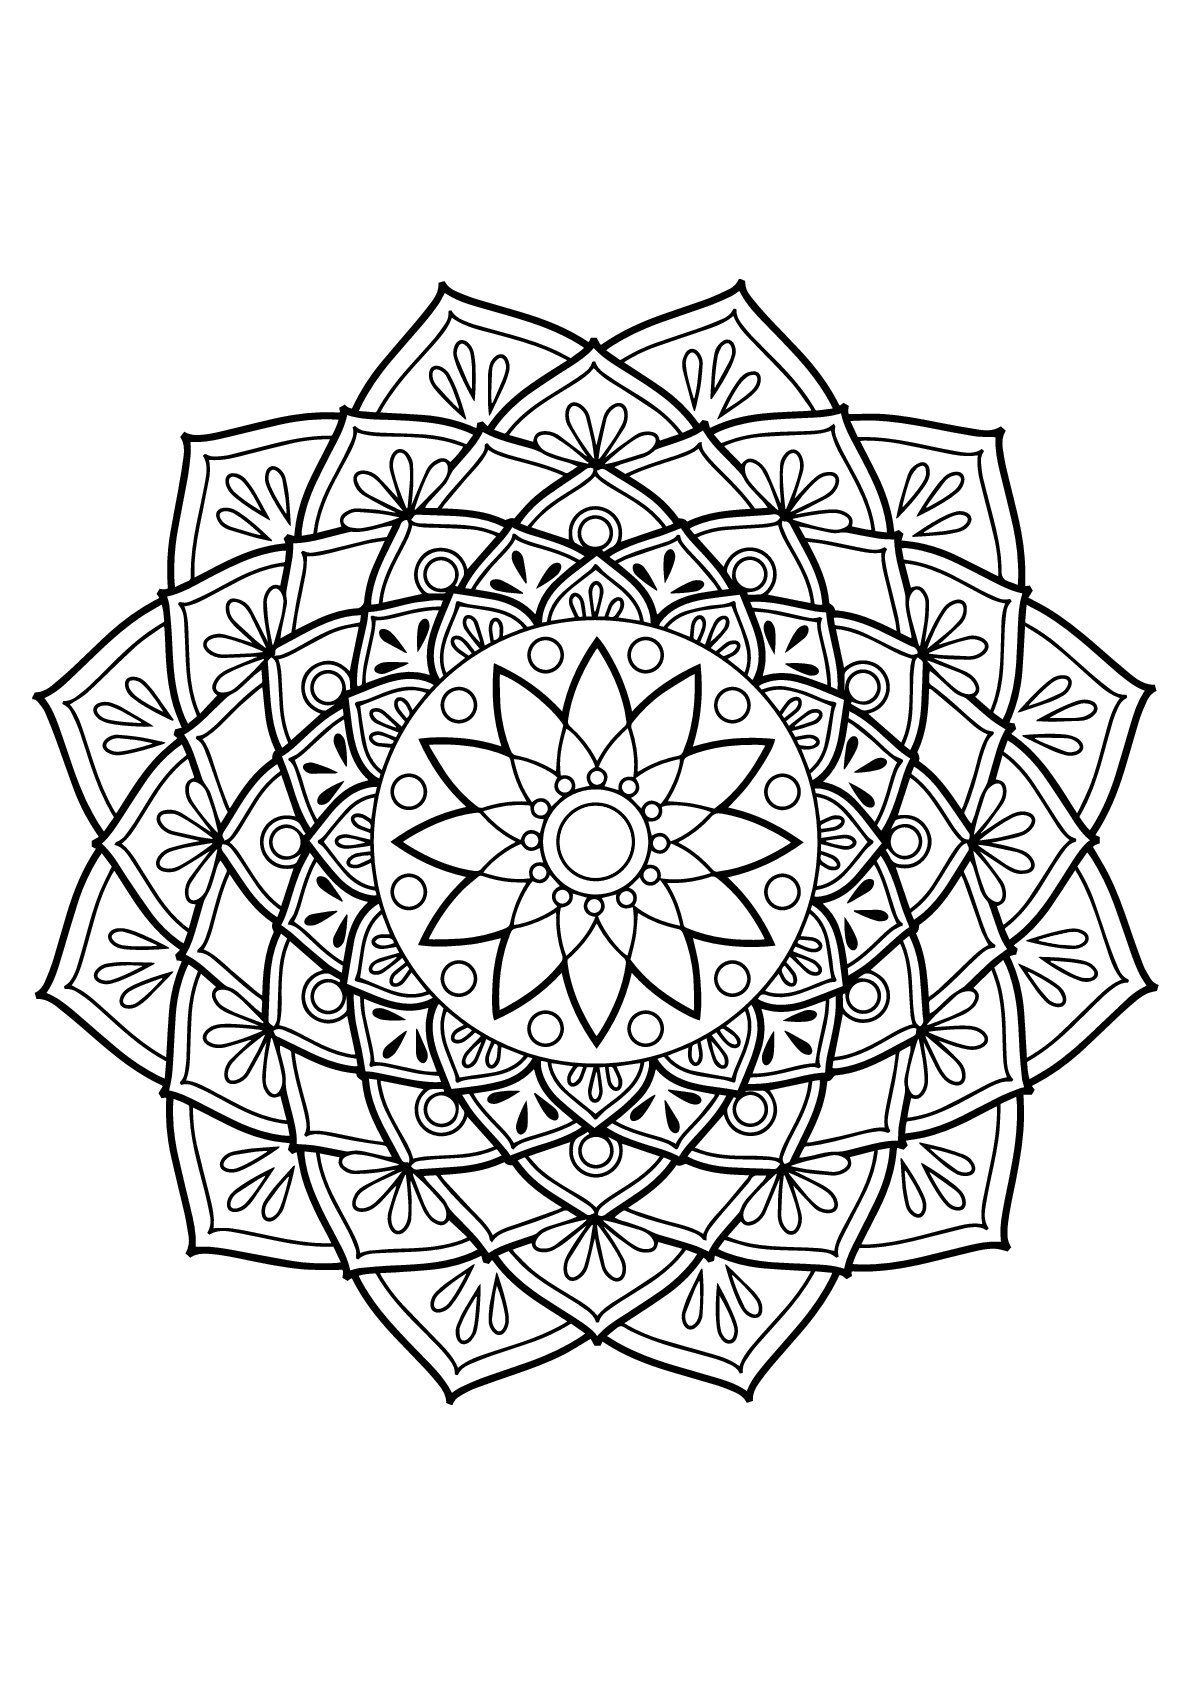 simple mandalas to color simple mandala 18 mandalas coloring pages for kids to color simple to mandalas